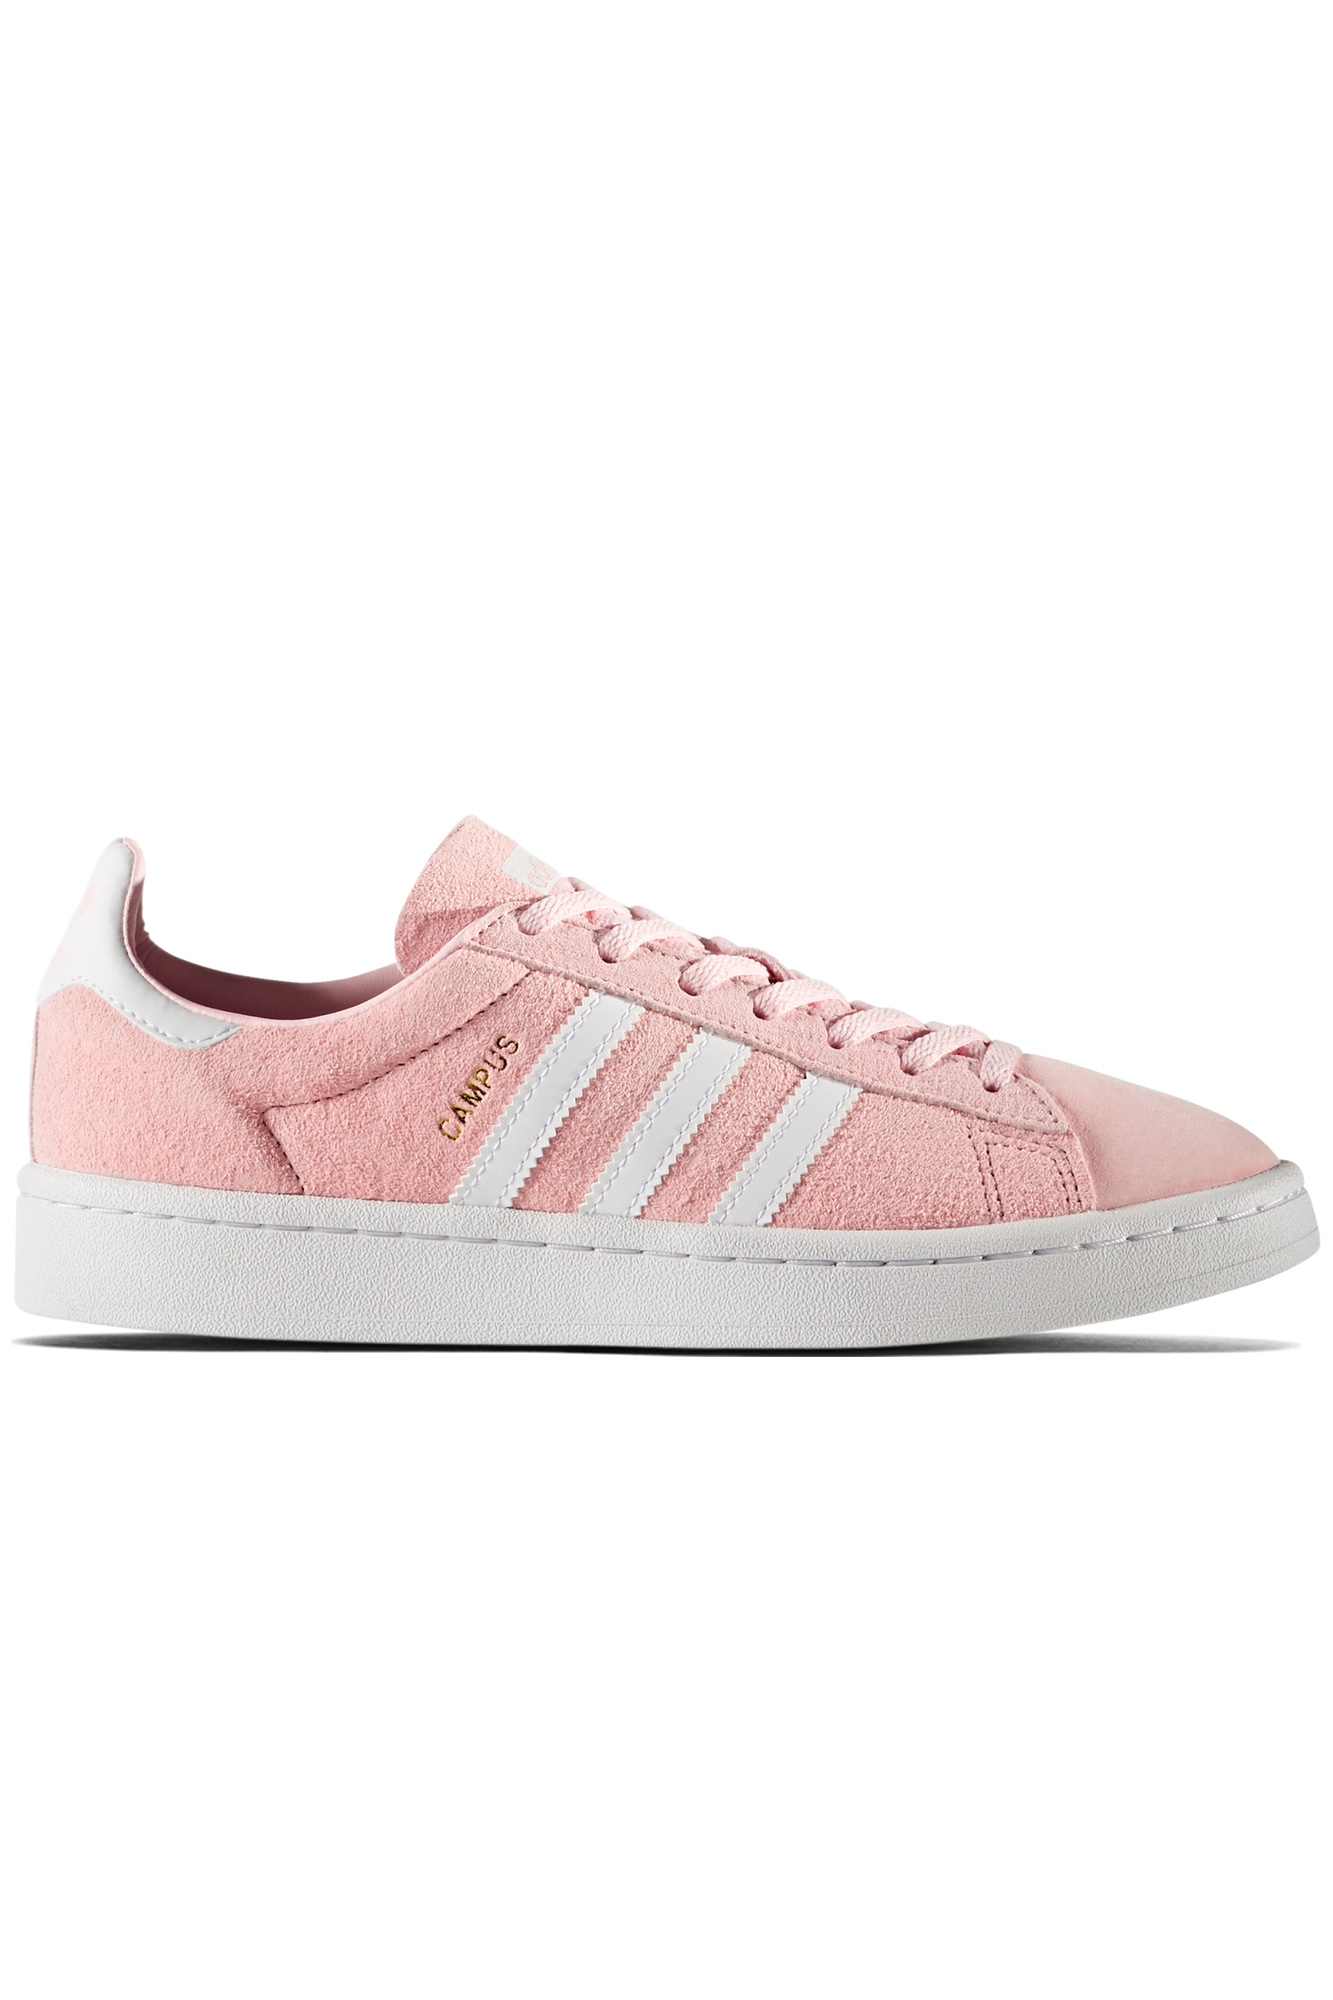 finest selection 48eb1 07617 Buty adidas Originals Campus - BY9845 ...